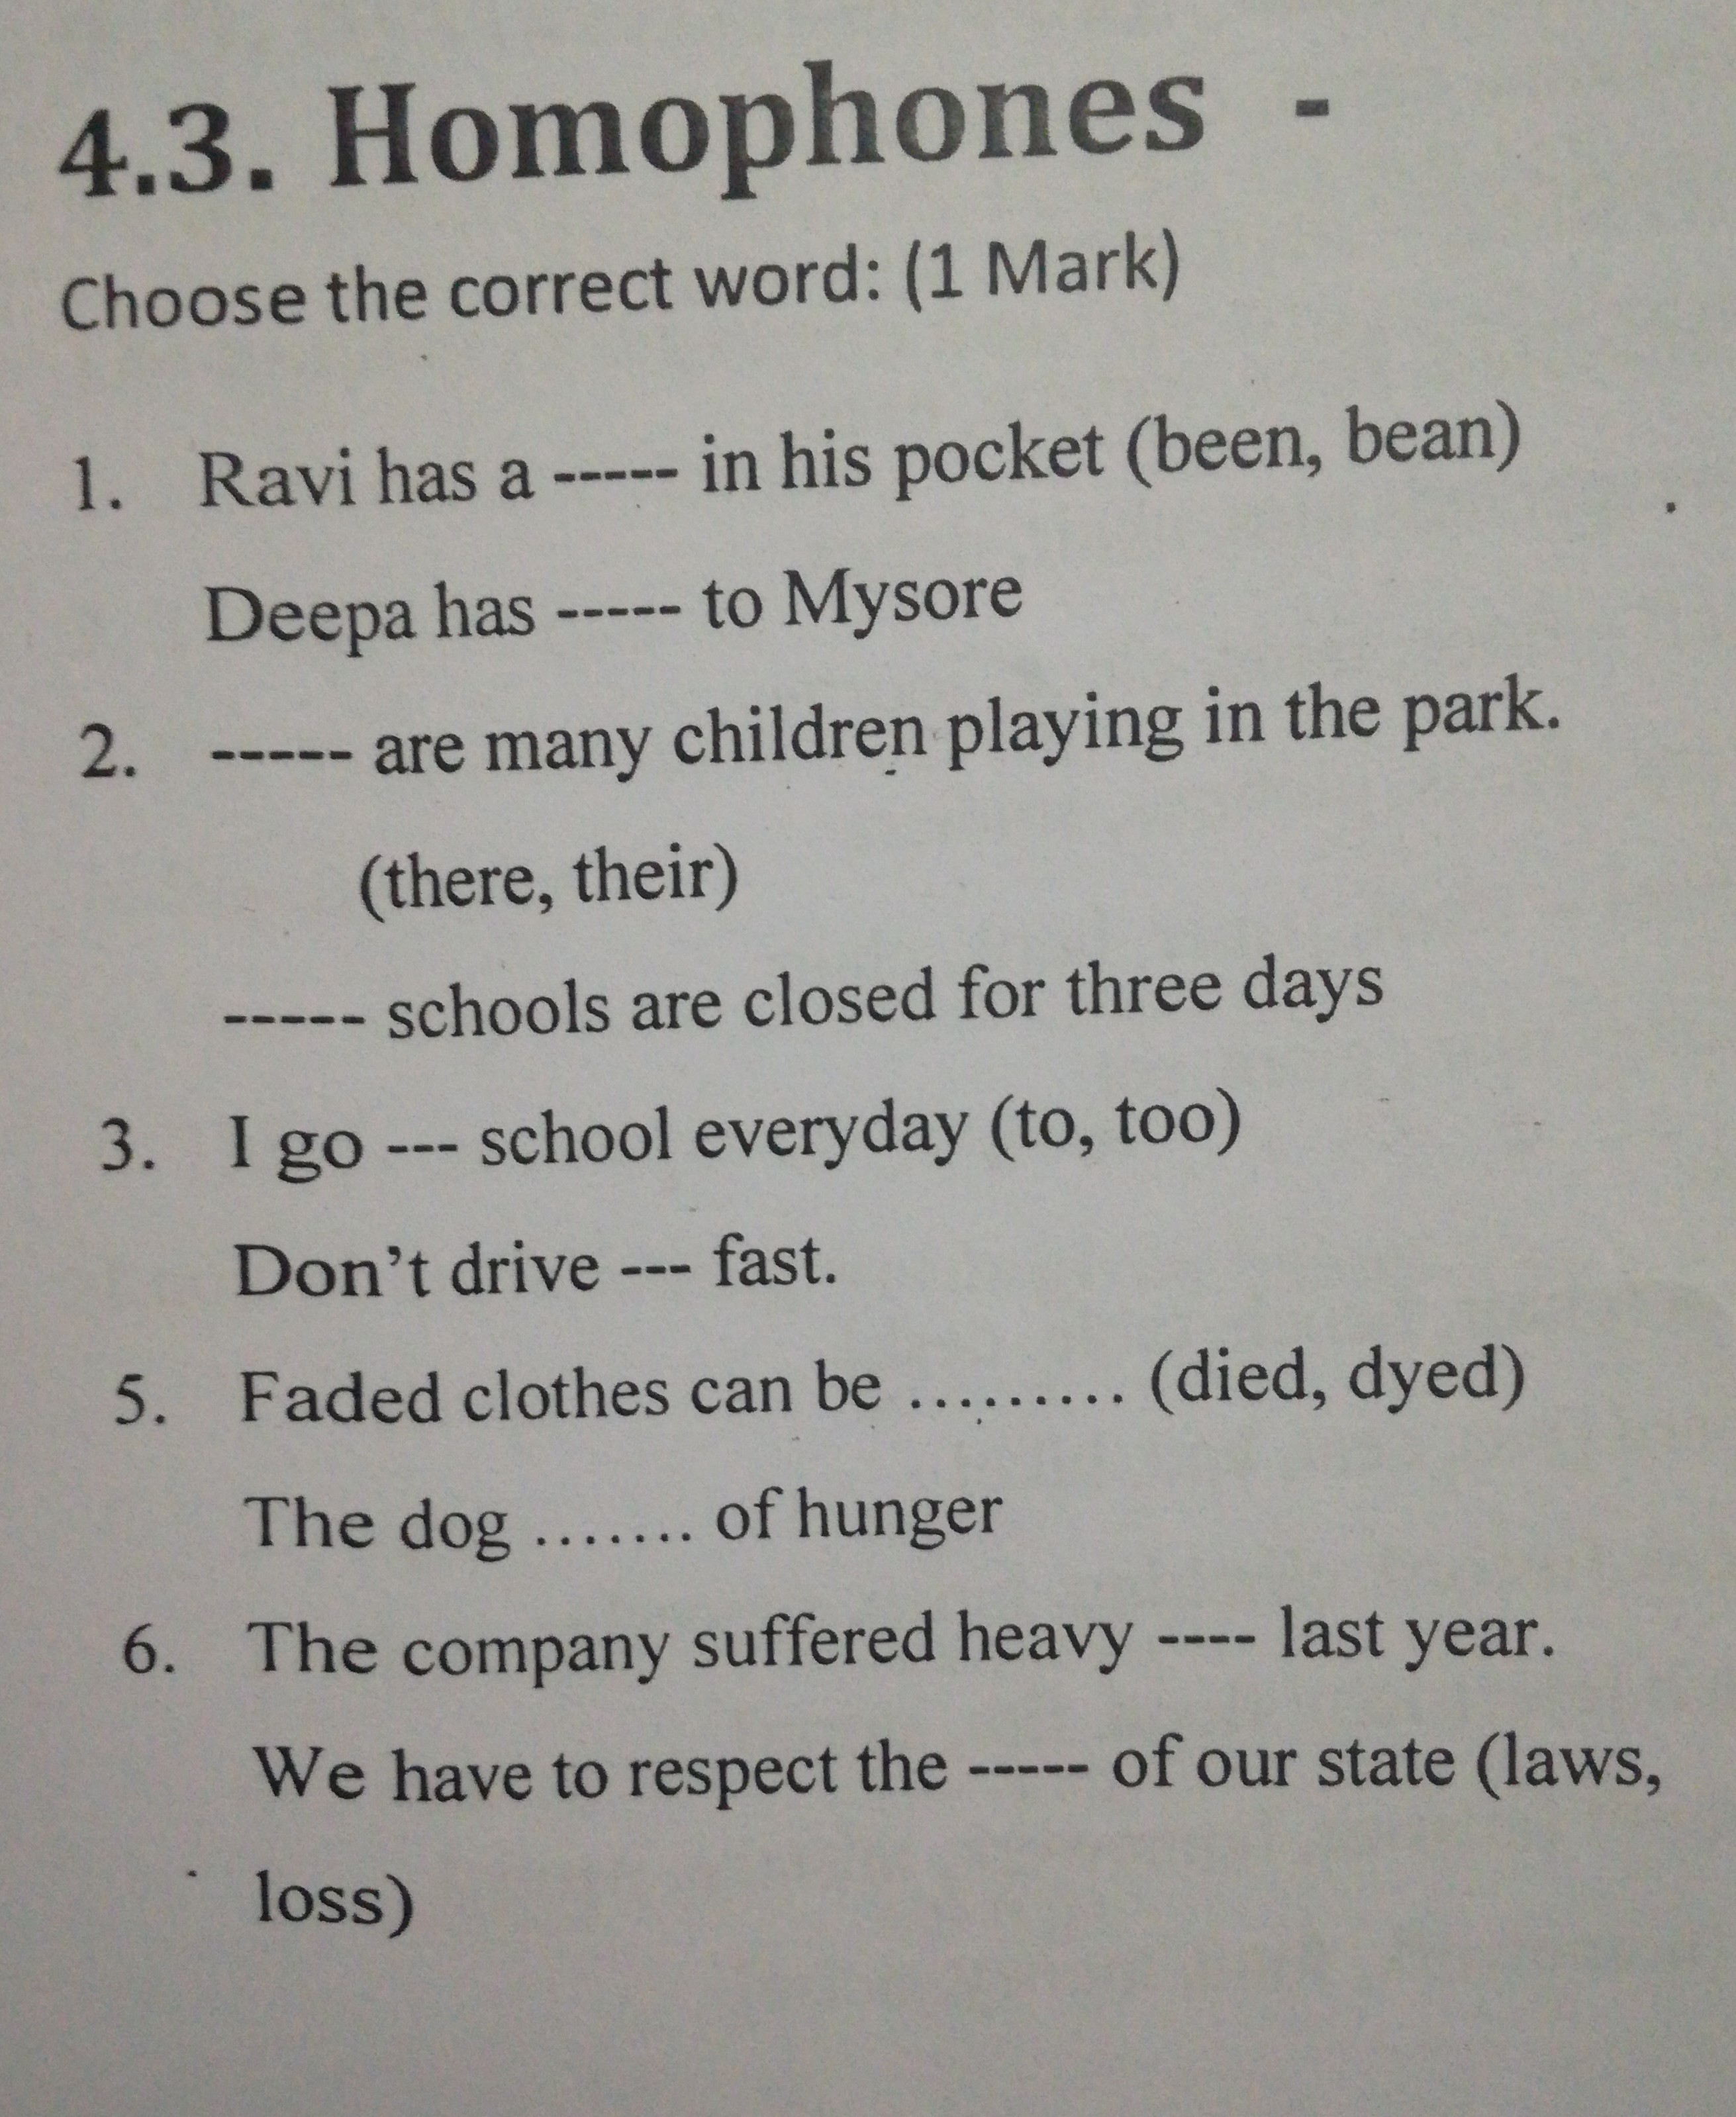 please answer this questionIt is English grammar, homophones